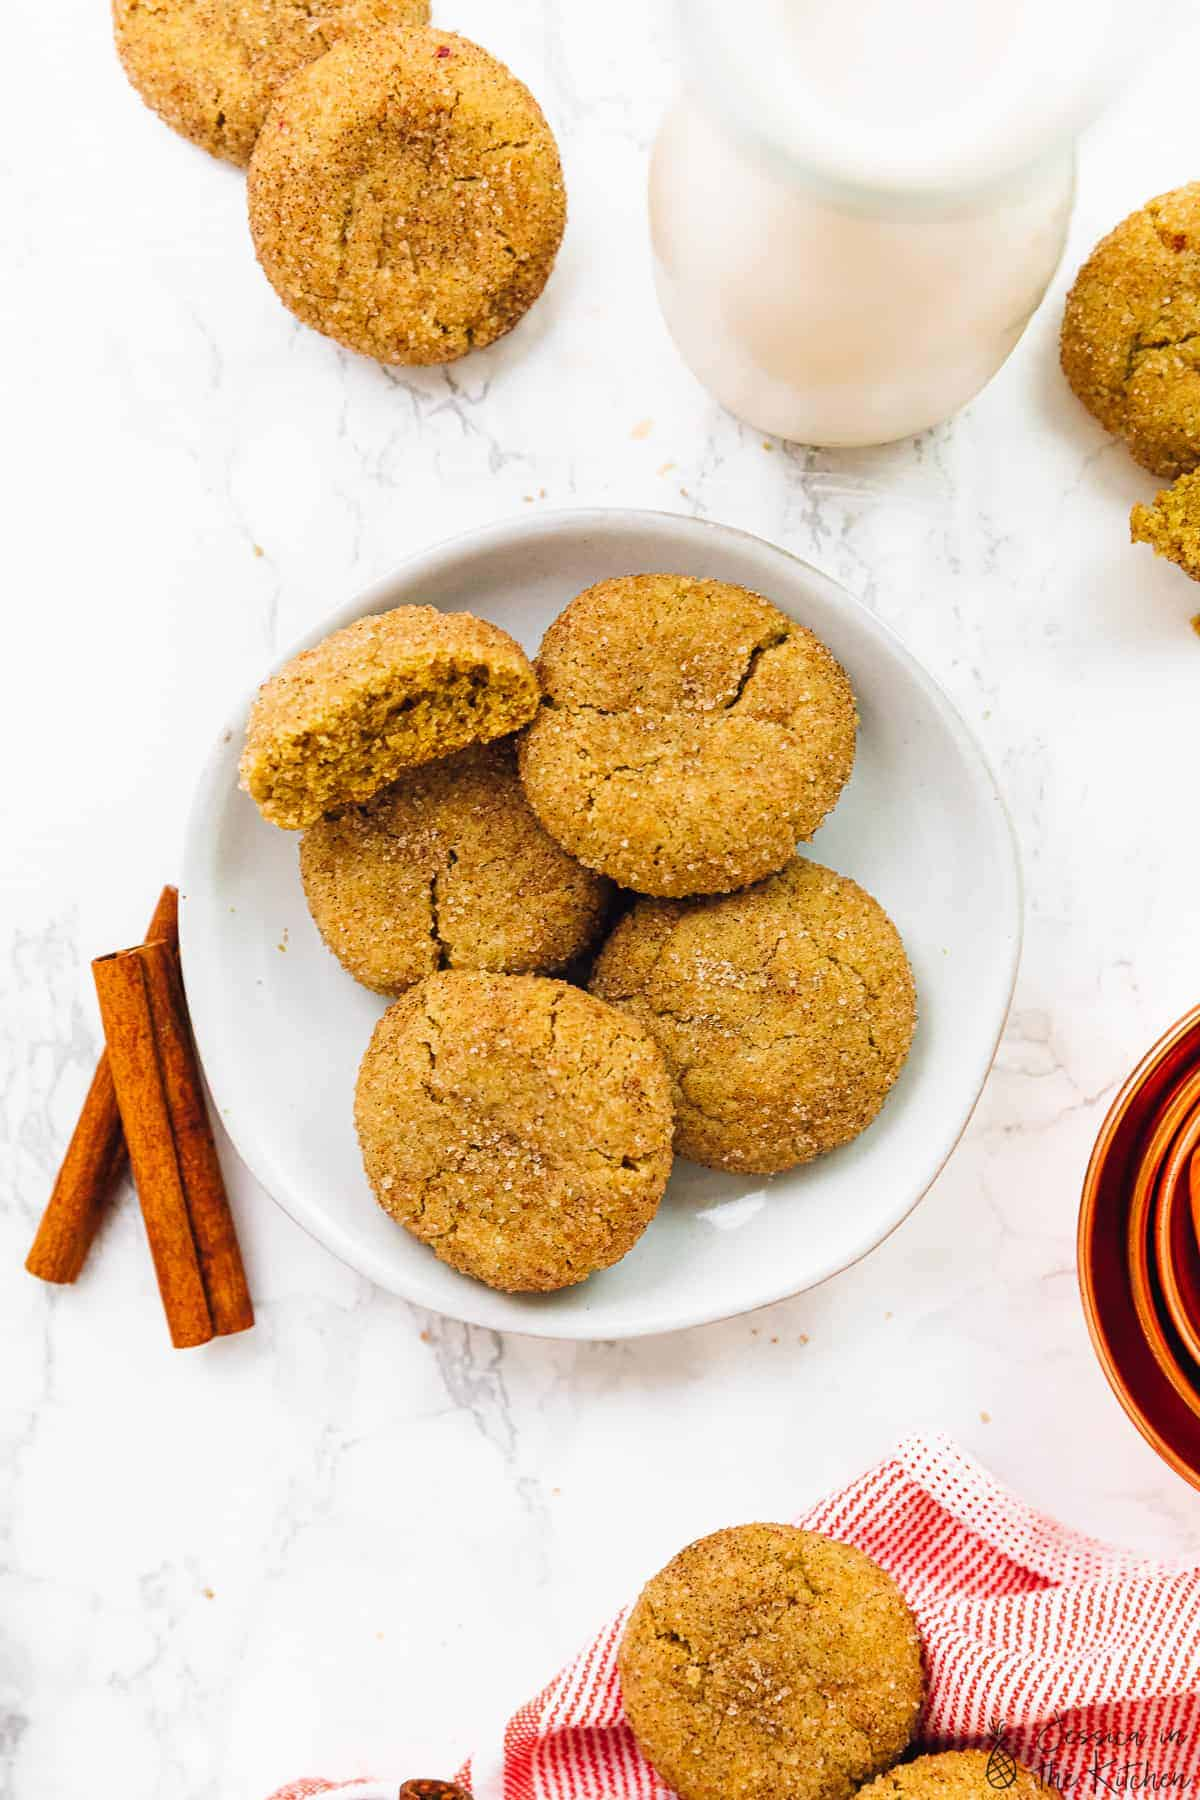 Five snickerdoodle cookies on a plate spread out with cinnamon sticks on the side.